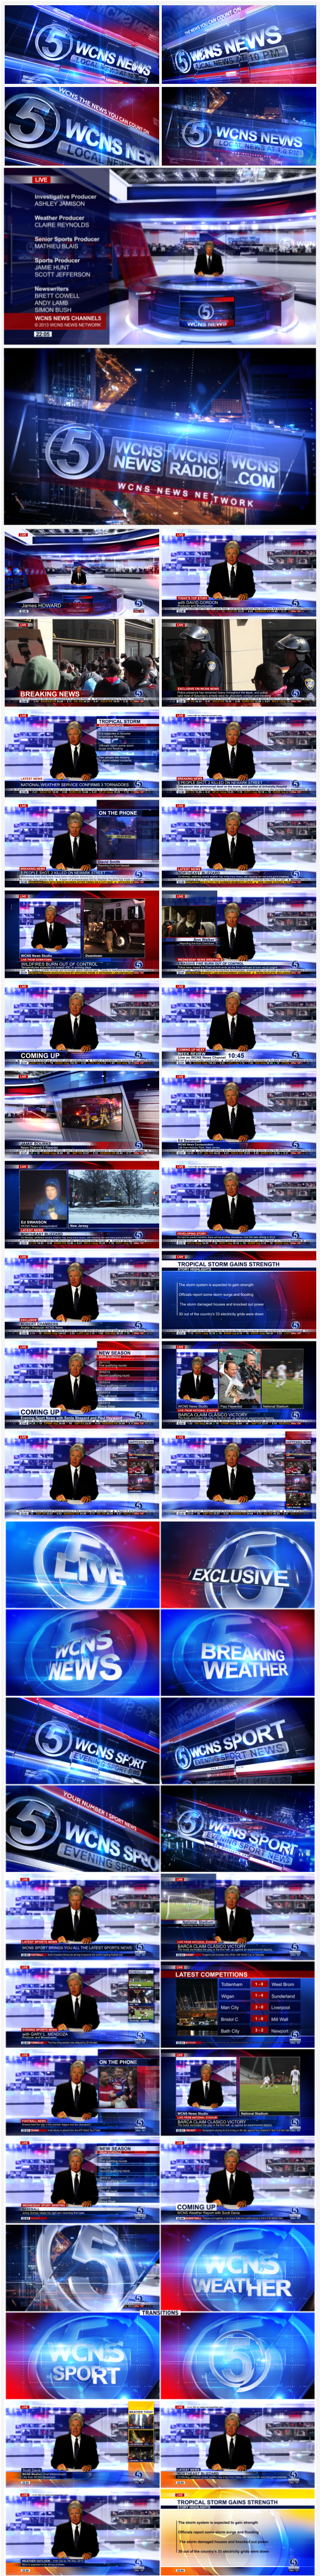 Broadcast Design - Complete News Package 5 - 5